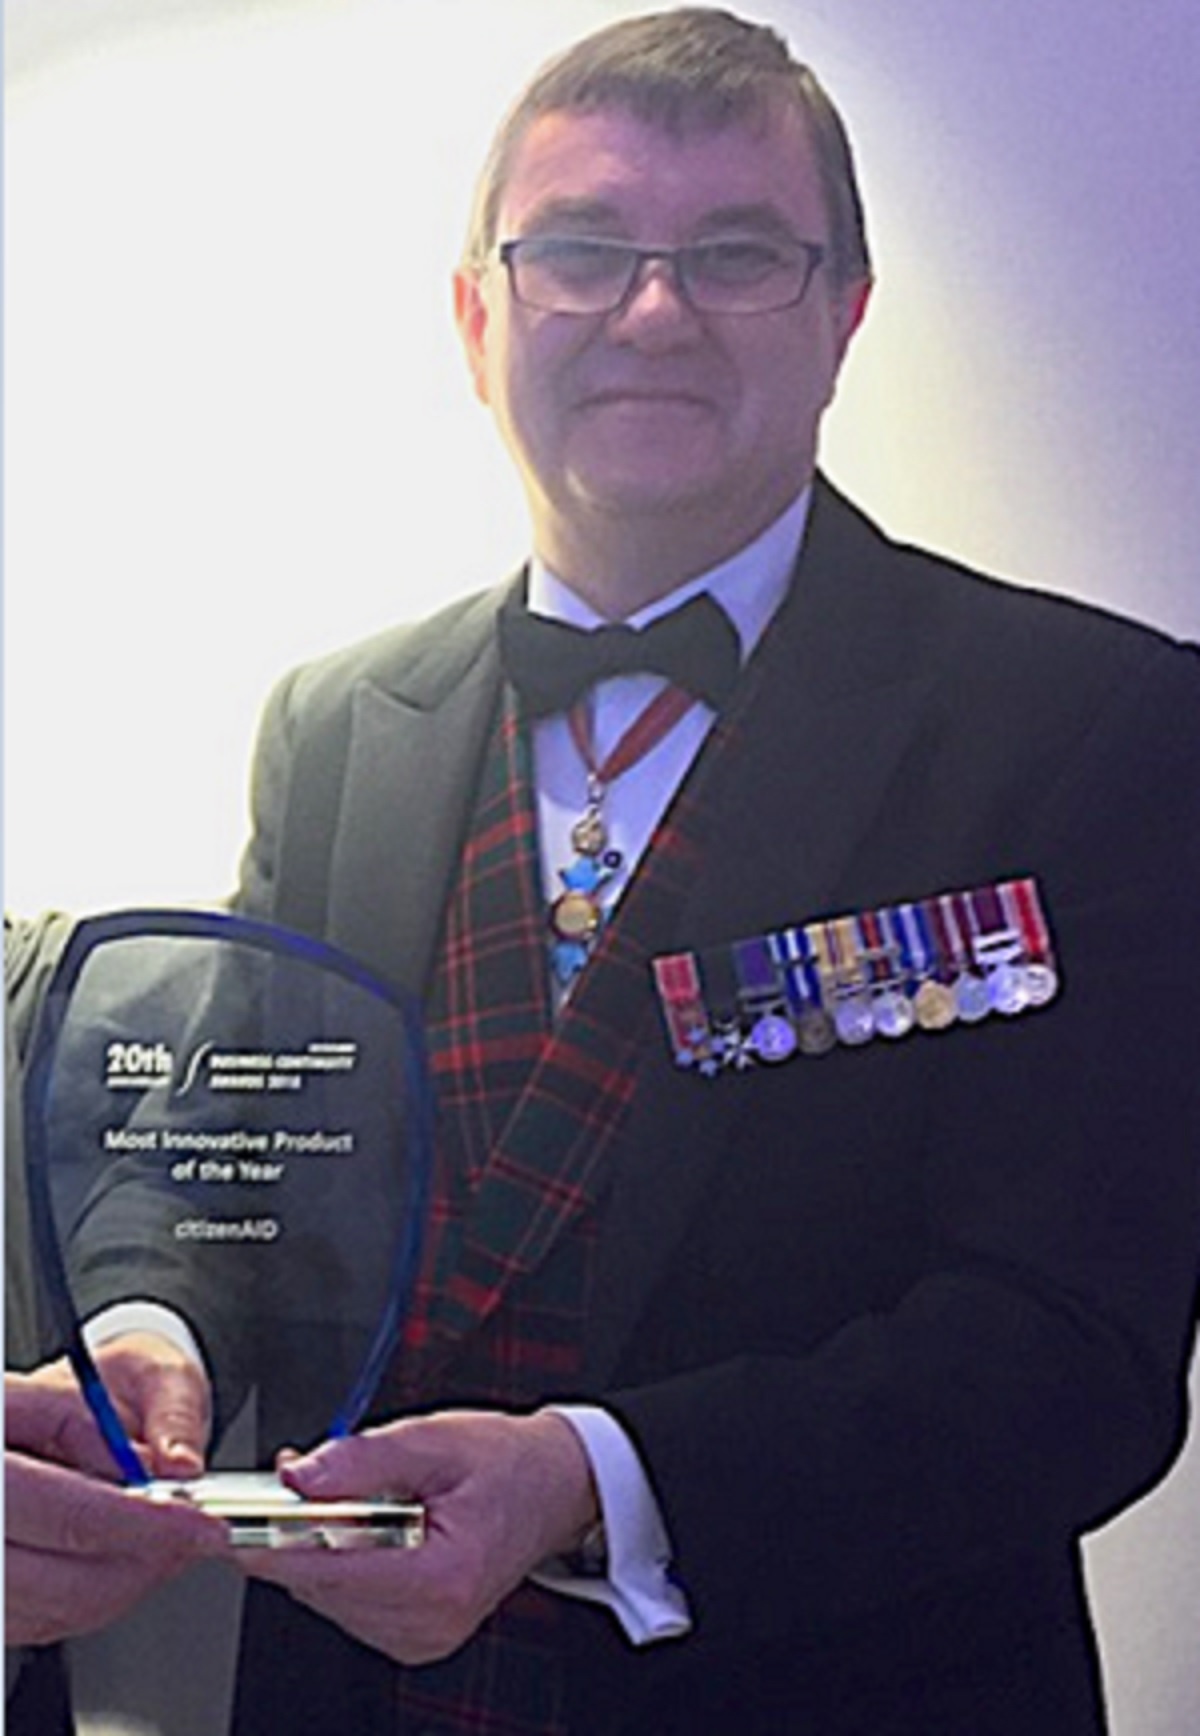 WINNER CitizenAID co-founder, Brigadier Tim Hodgetts, holding the award